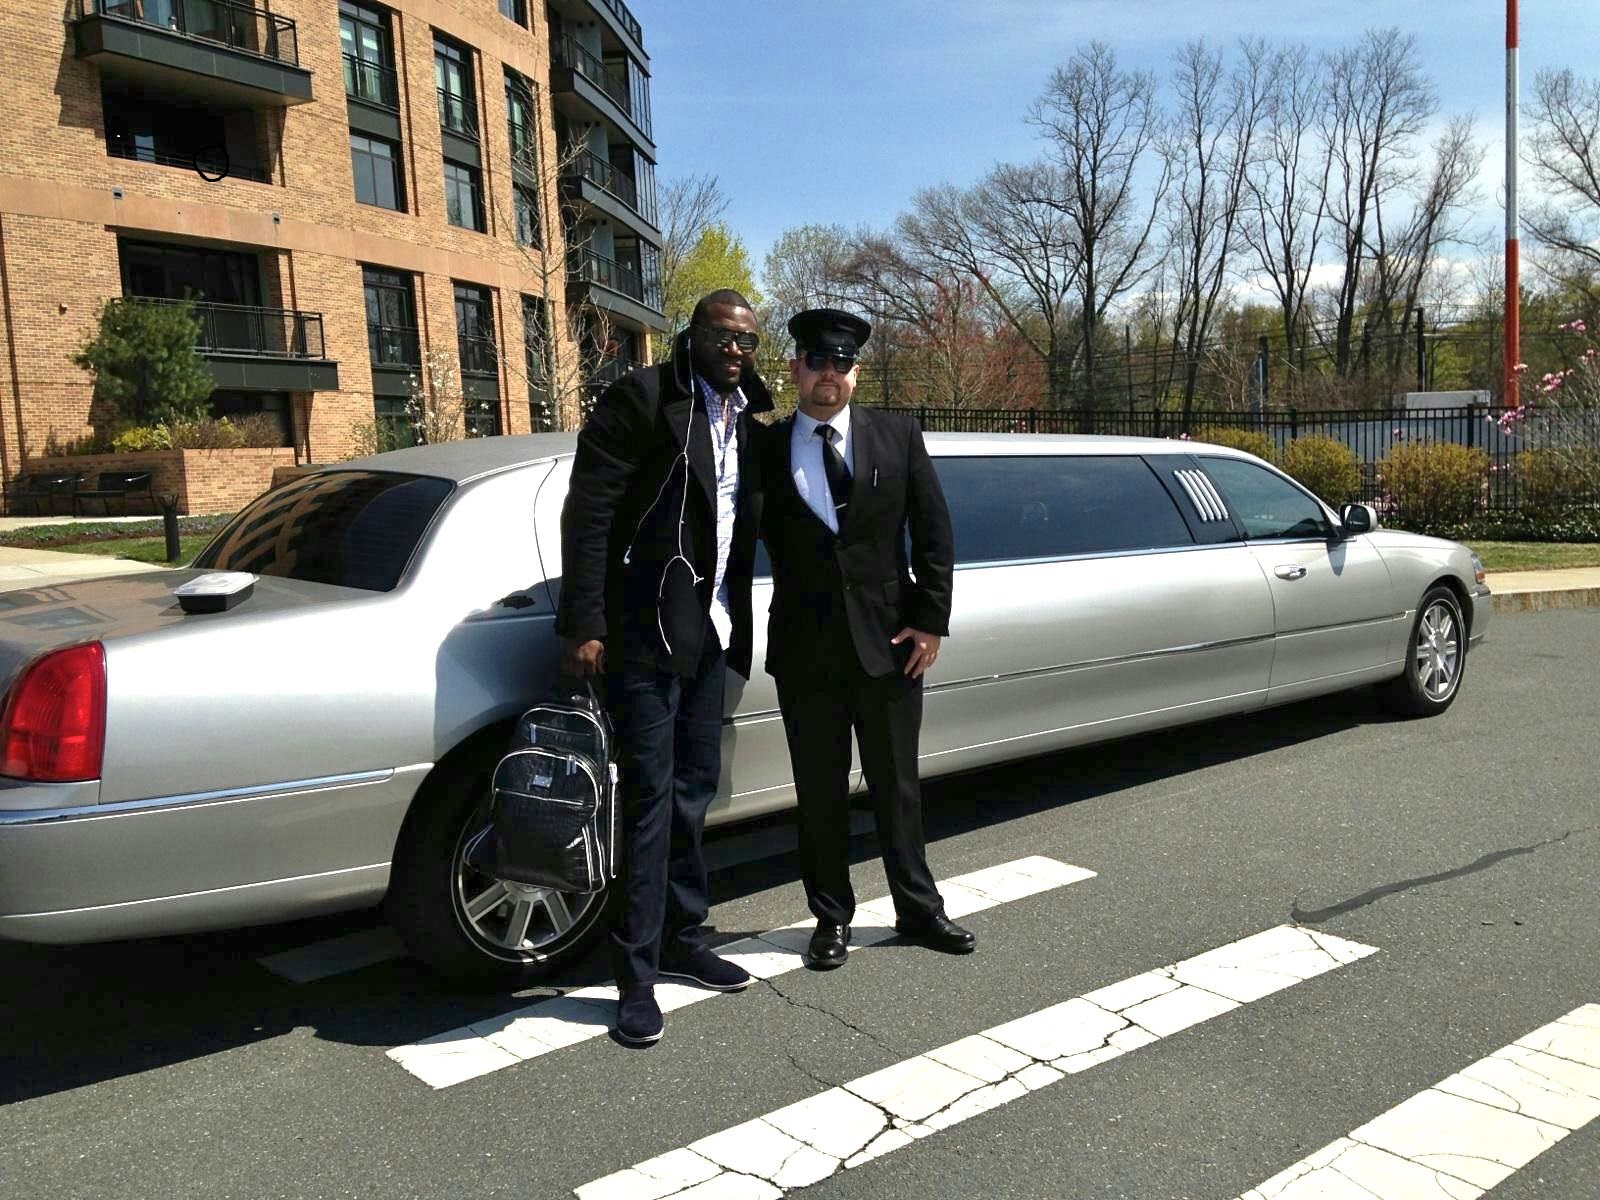 Limos for Rent Rutland Ma 01543